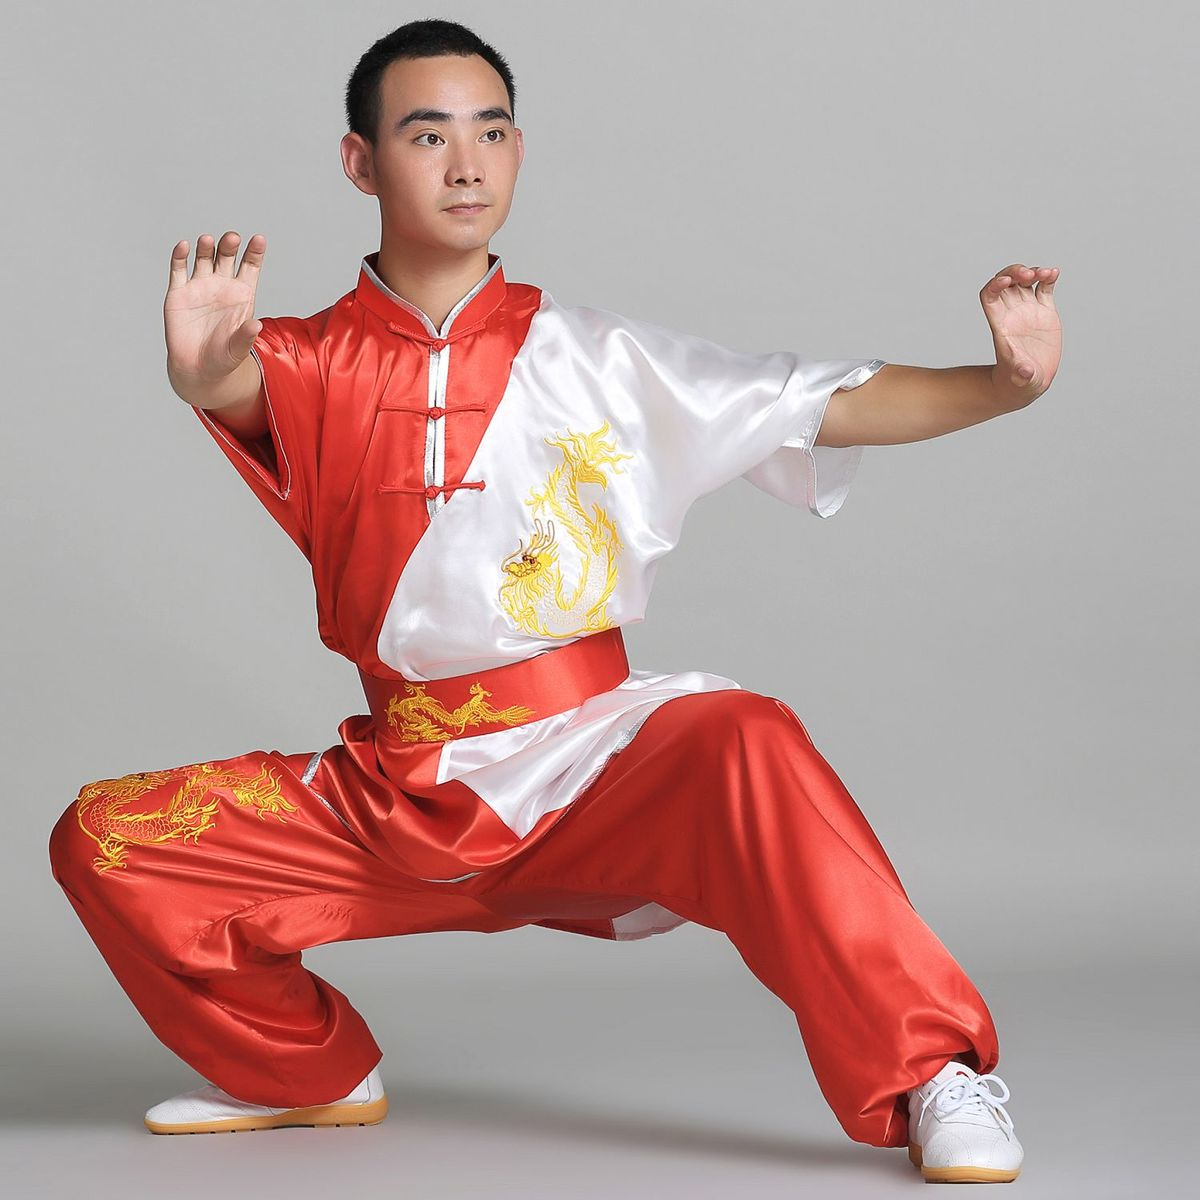 New Traditional Chinese Dress Men Clothing Roupas Wushu Kung Fu Uniform Martial Art Folk Kungfu Clothes Tai chi suit tops+pants female wushu tai chi clothing embroidery clothes graded taijiquan embroidered costumes spring kungfu clothing